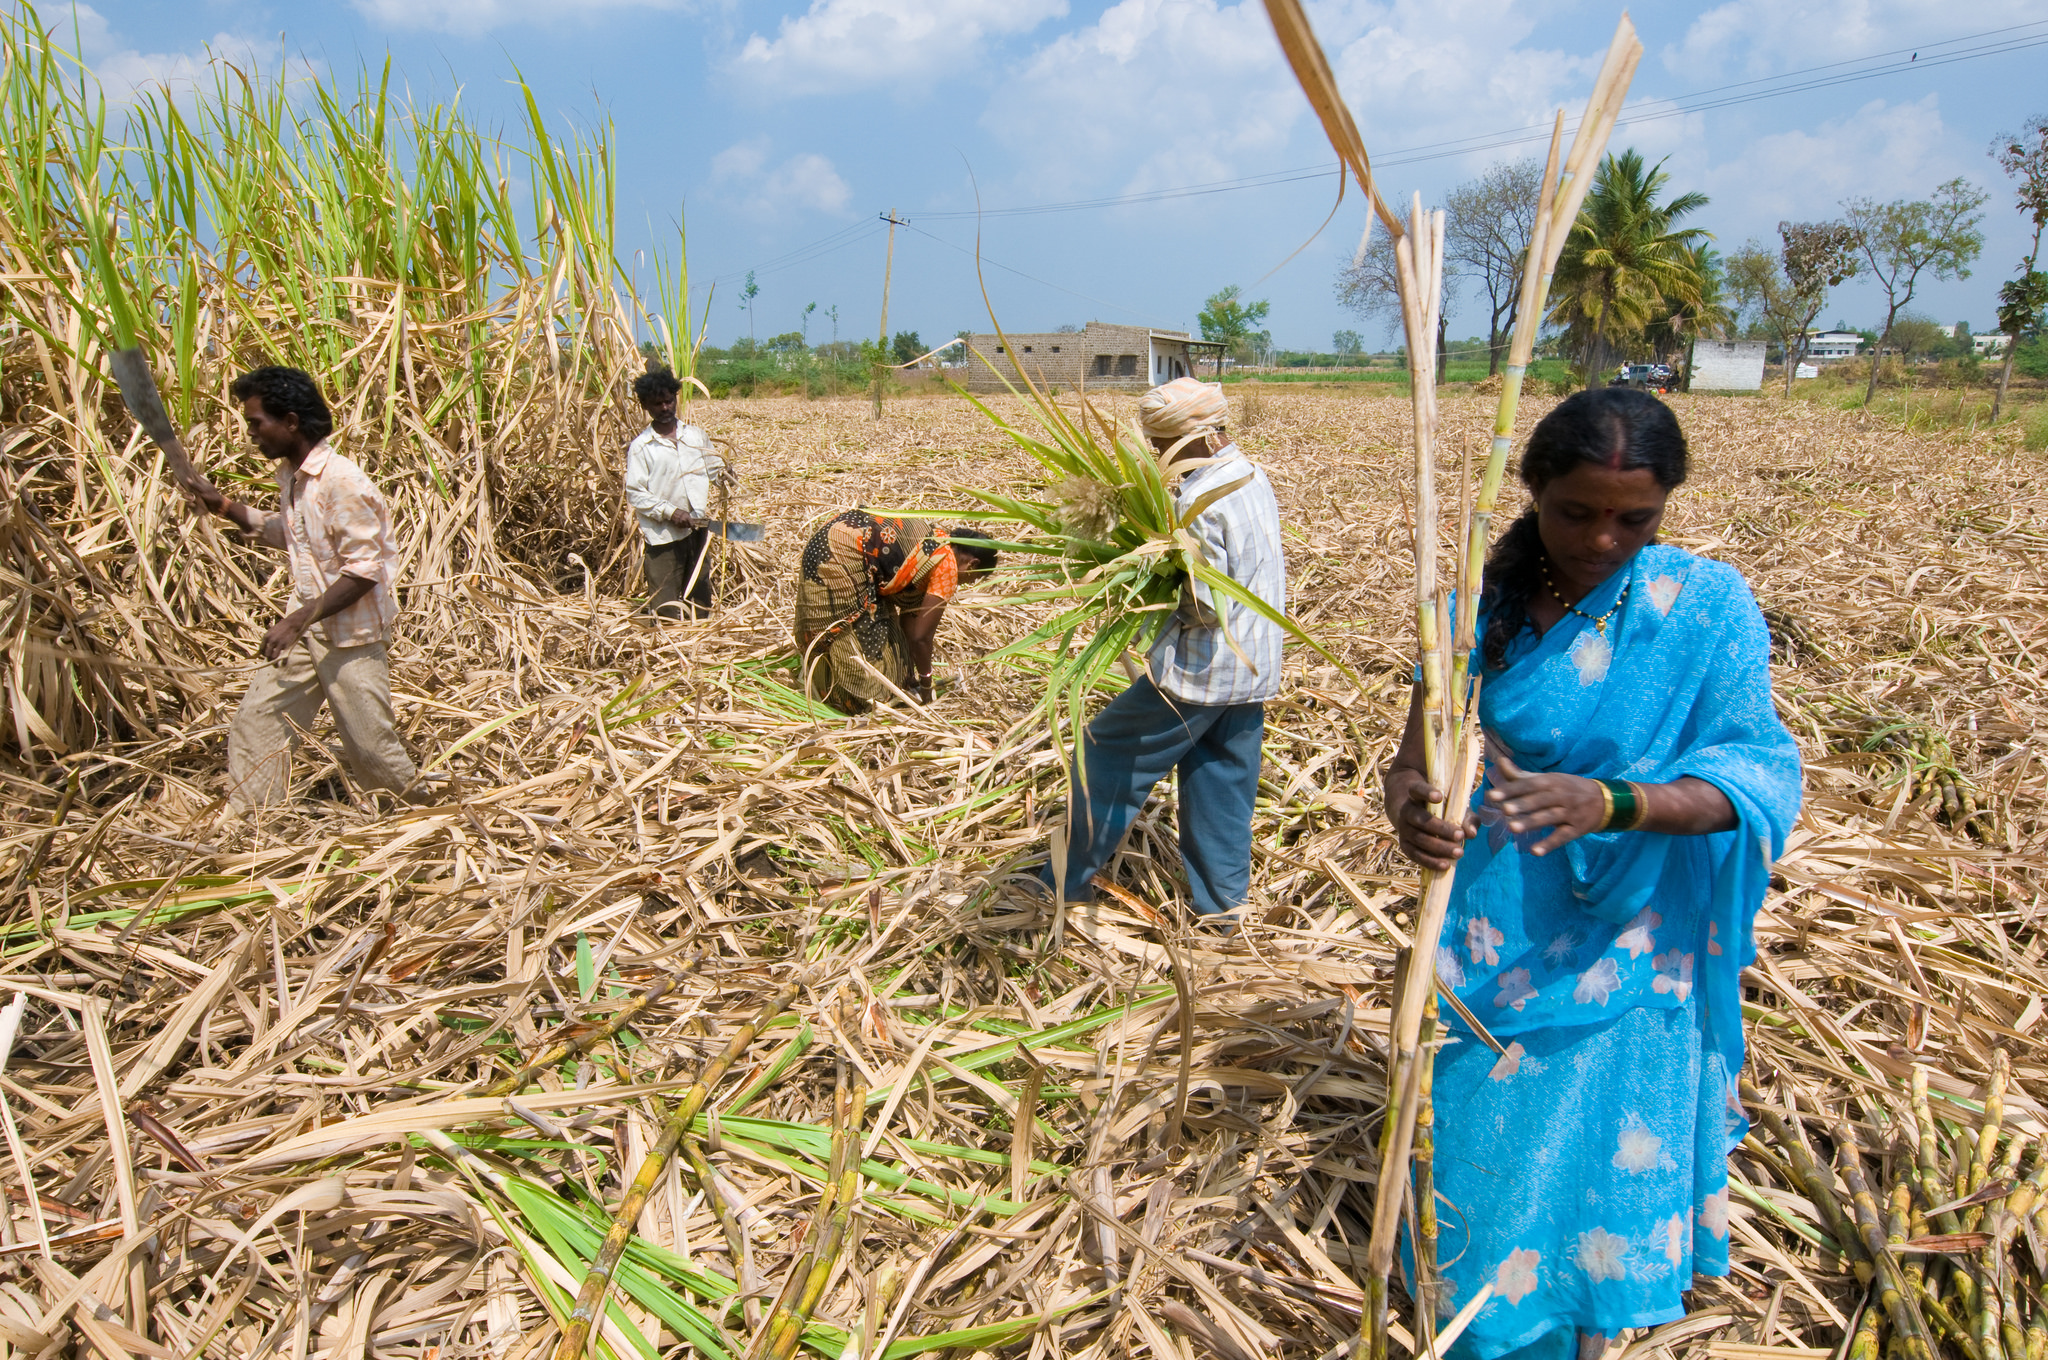 Farmers harvest sugarcane in India's Karnataka state